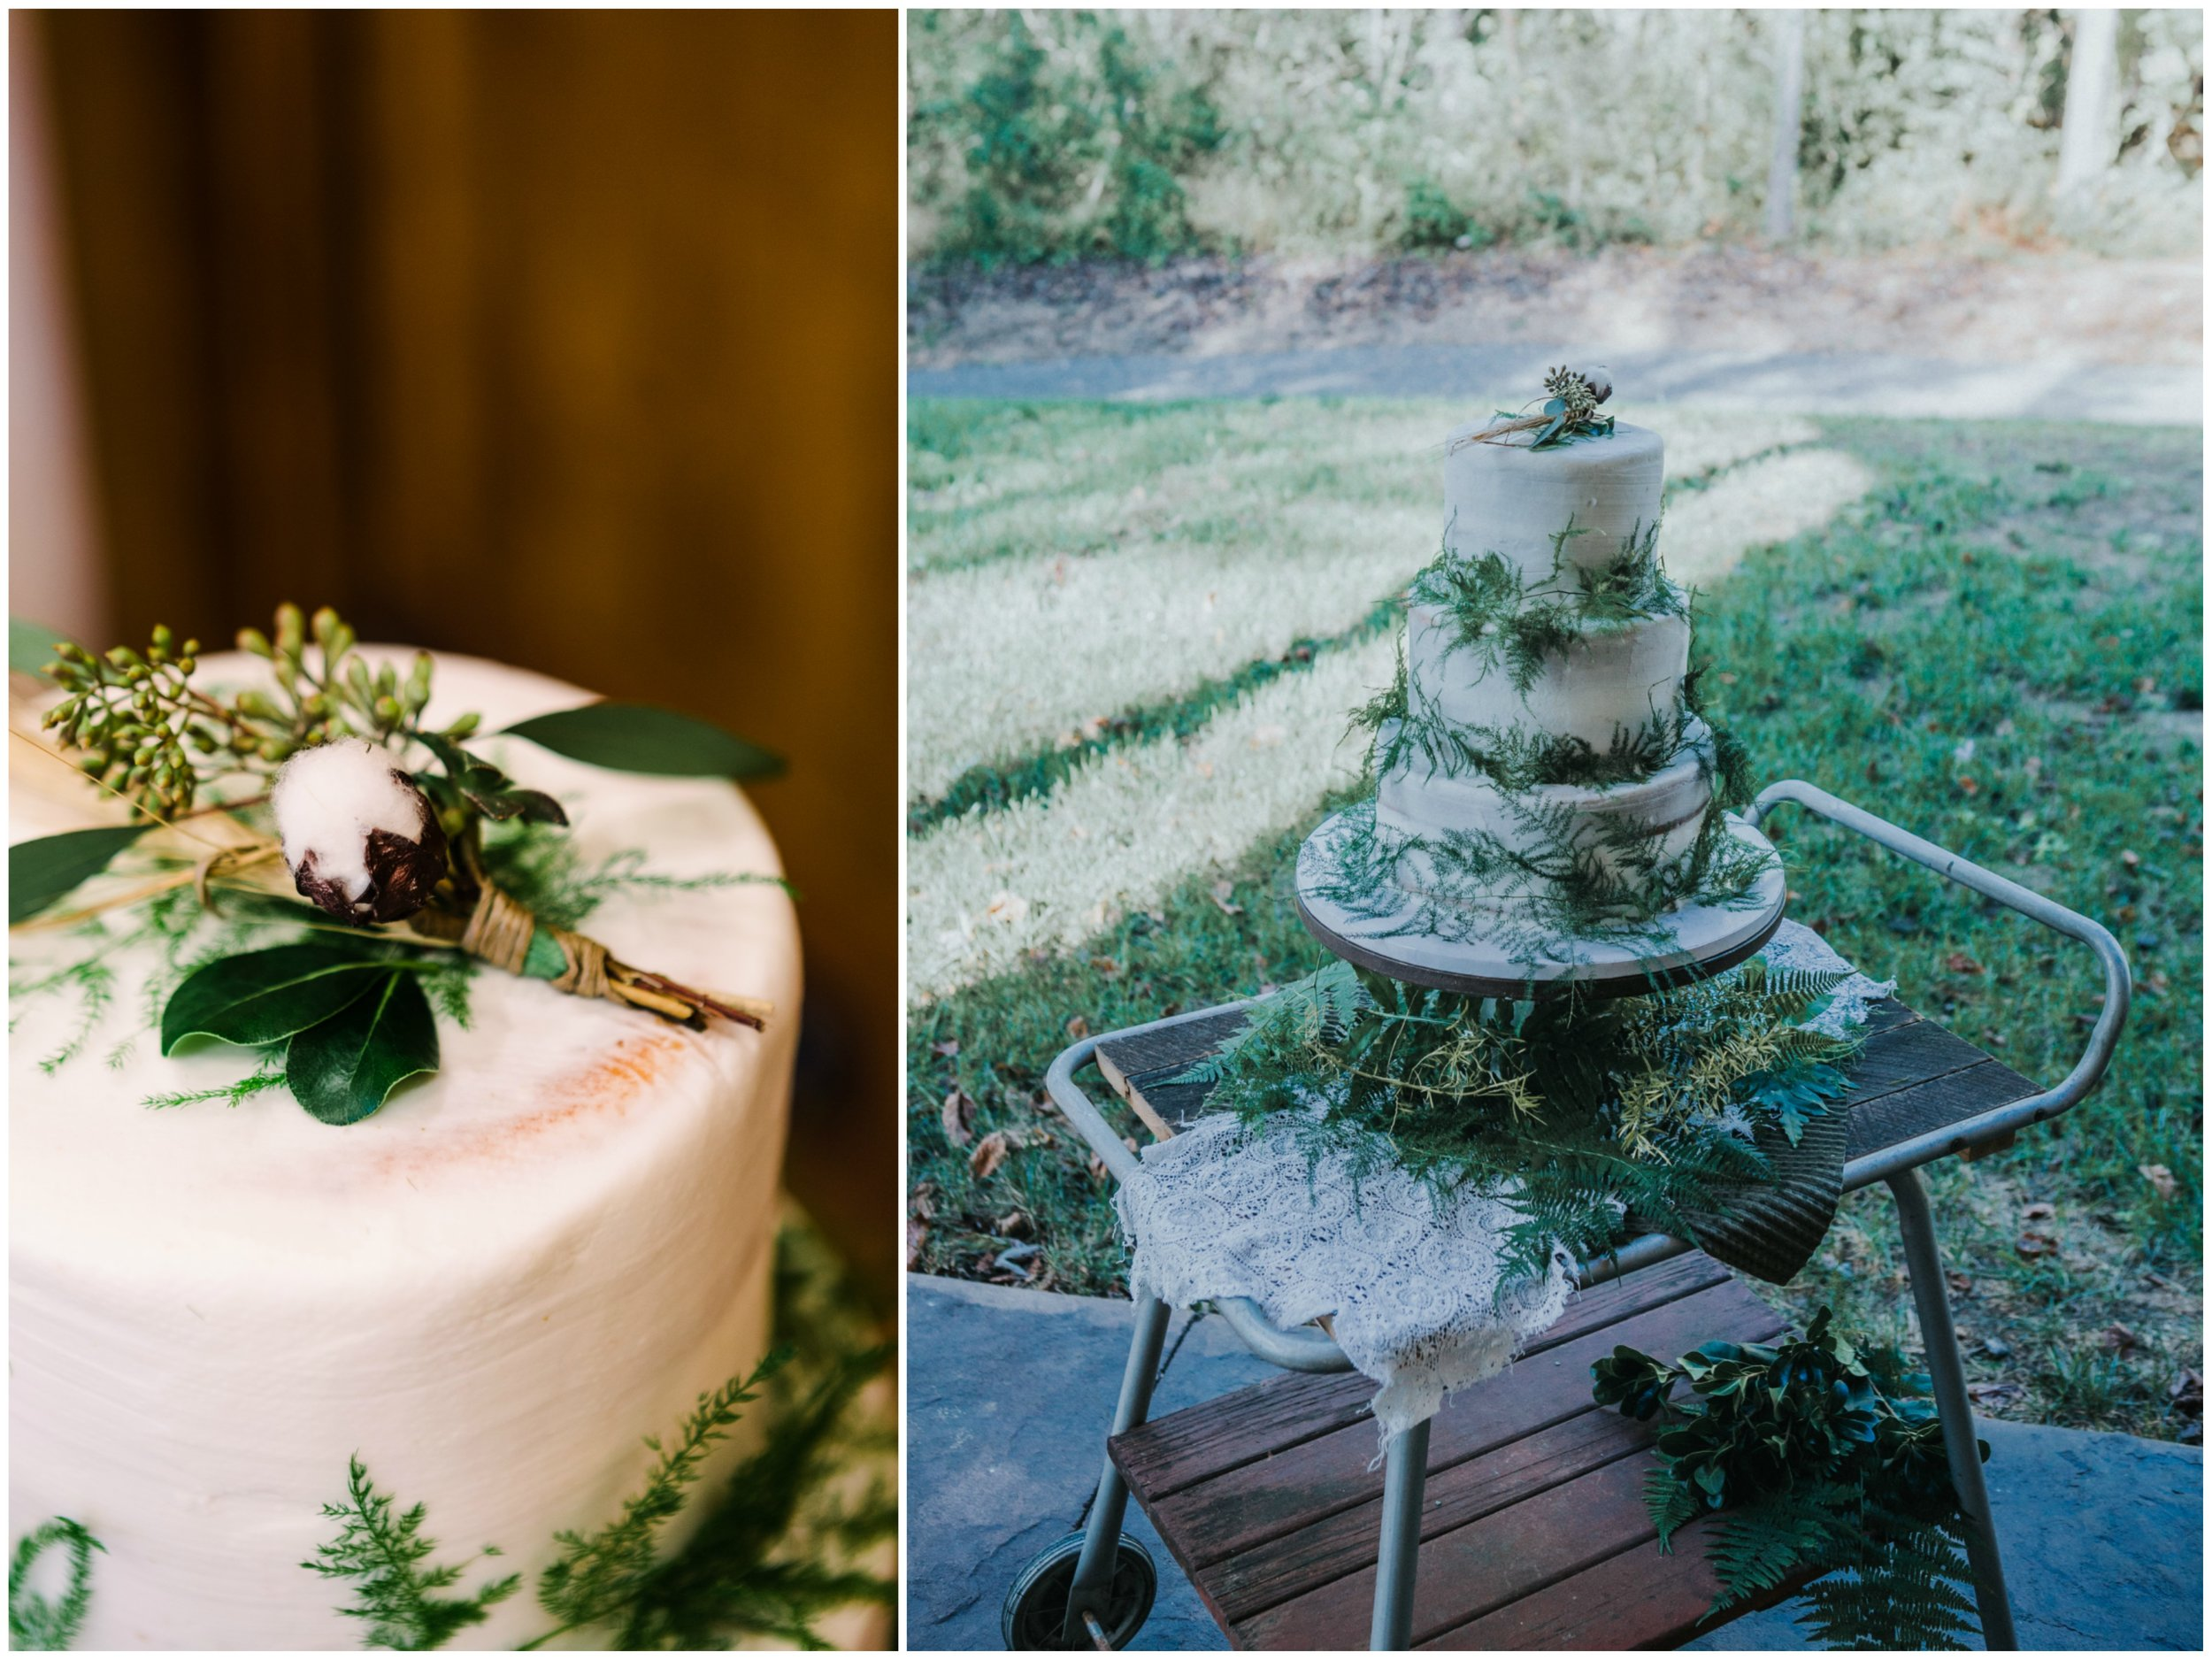 Cake from Bohemian Styled Shoot at Hiwassee River Weddings